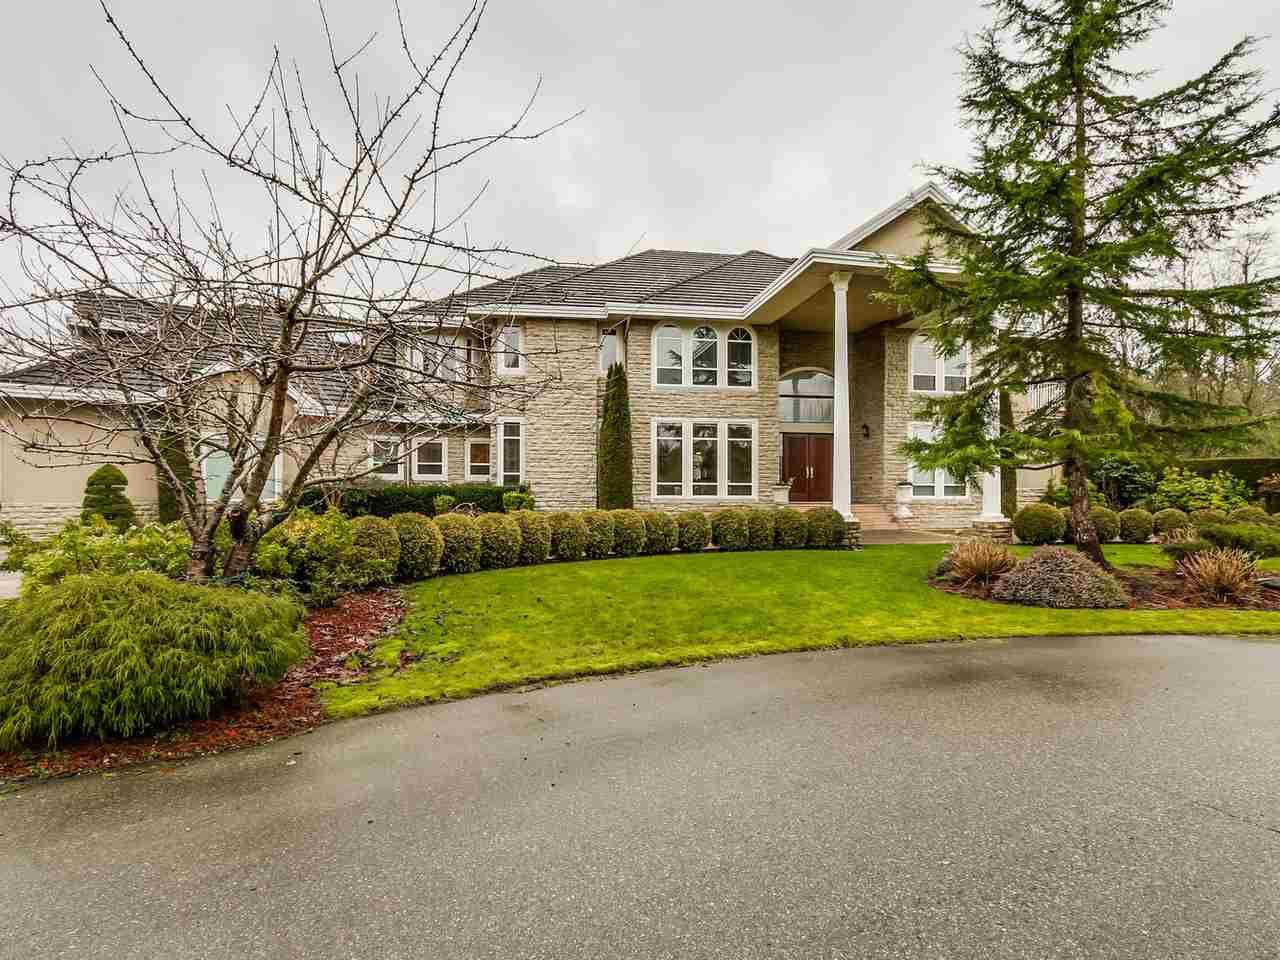 Main Photo: 19563 8 Avenue in Surrey: Hazelmere House for sale (South Surrey White Rock)  : MLS®# R2057027